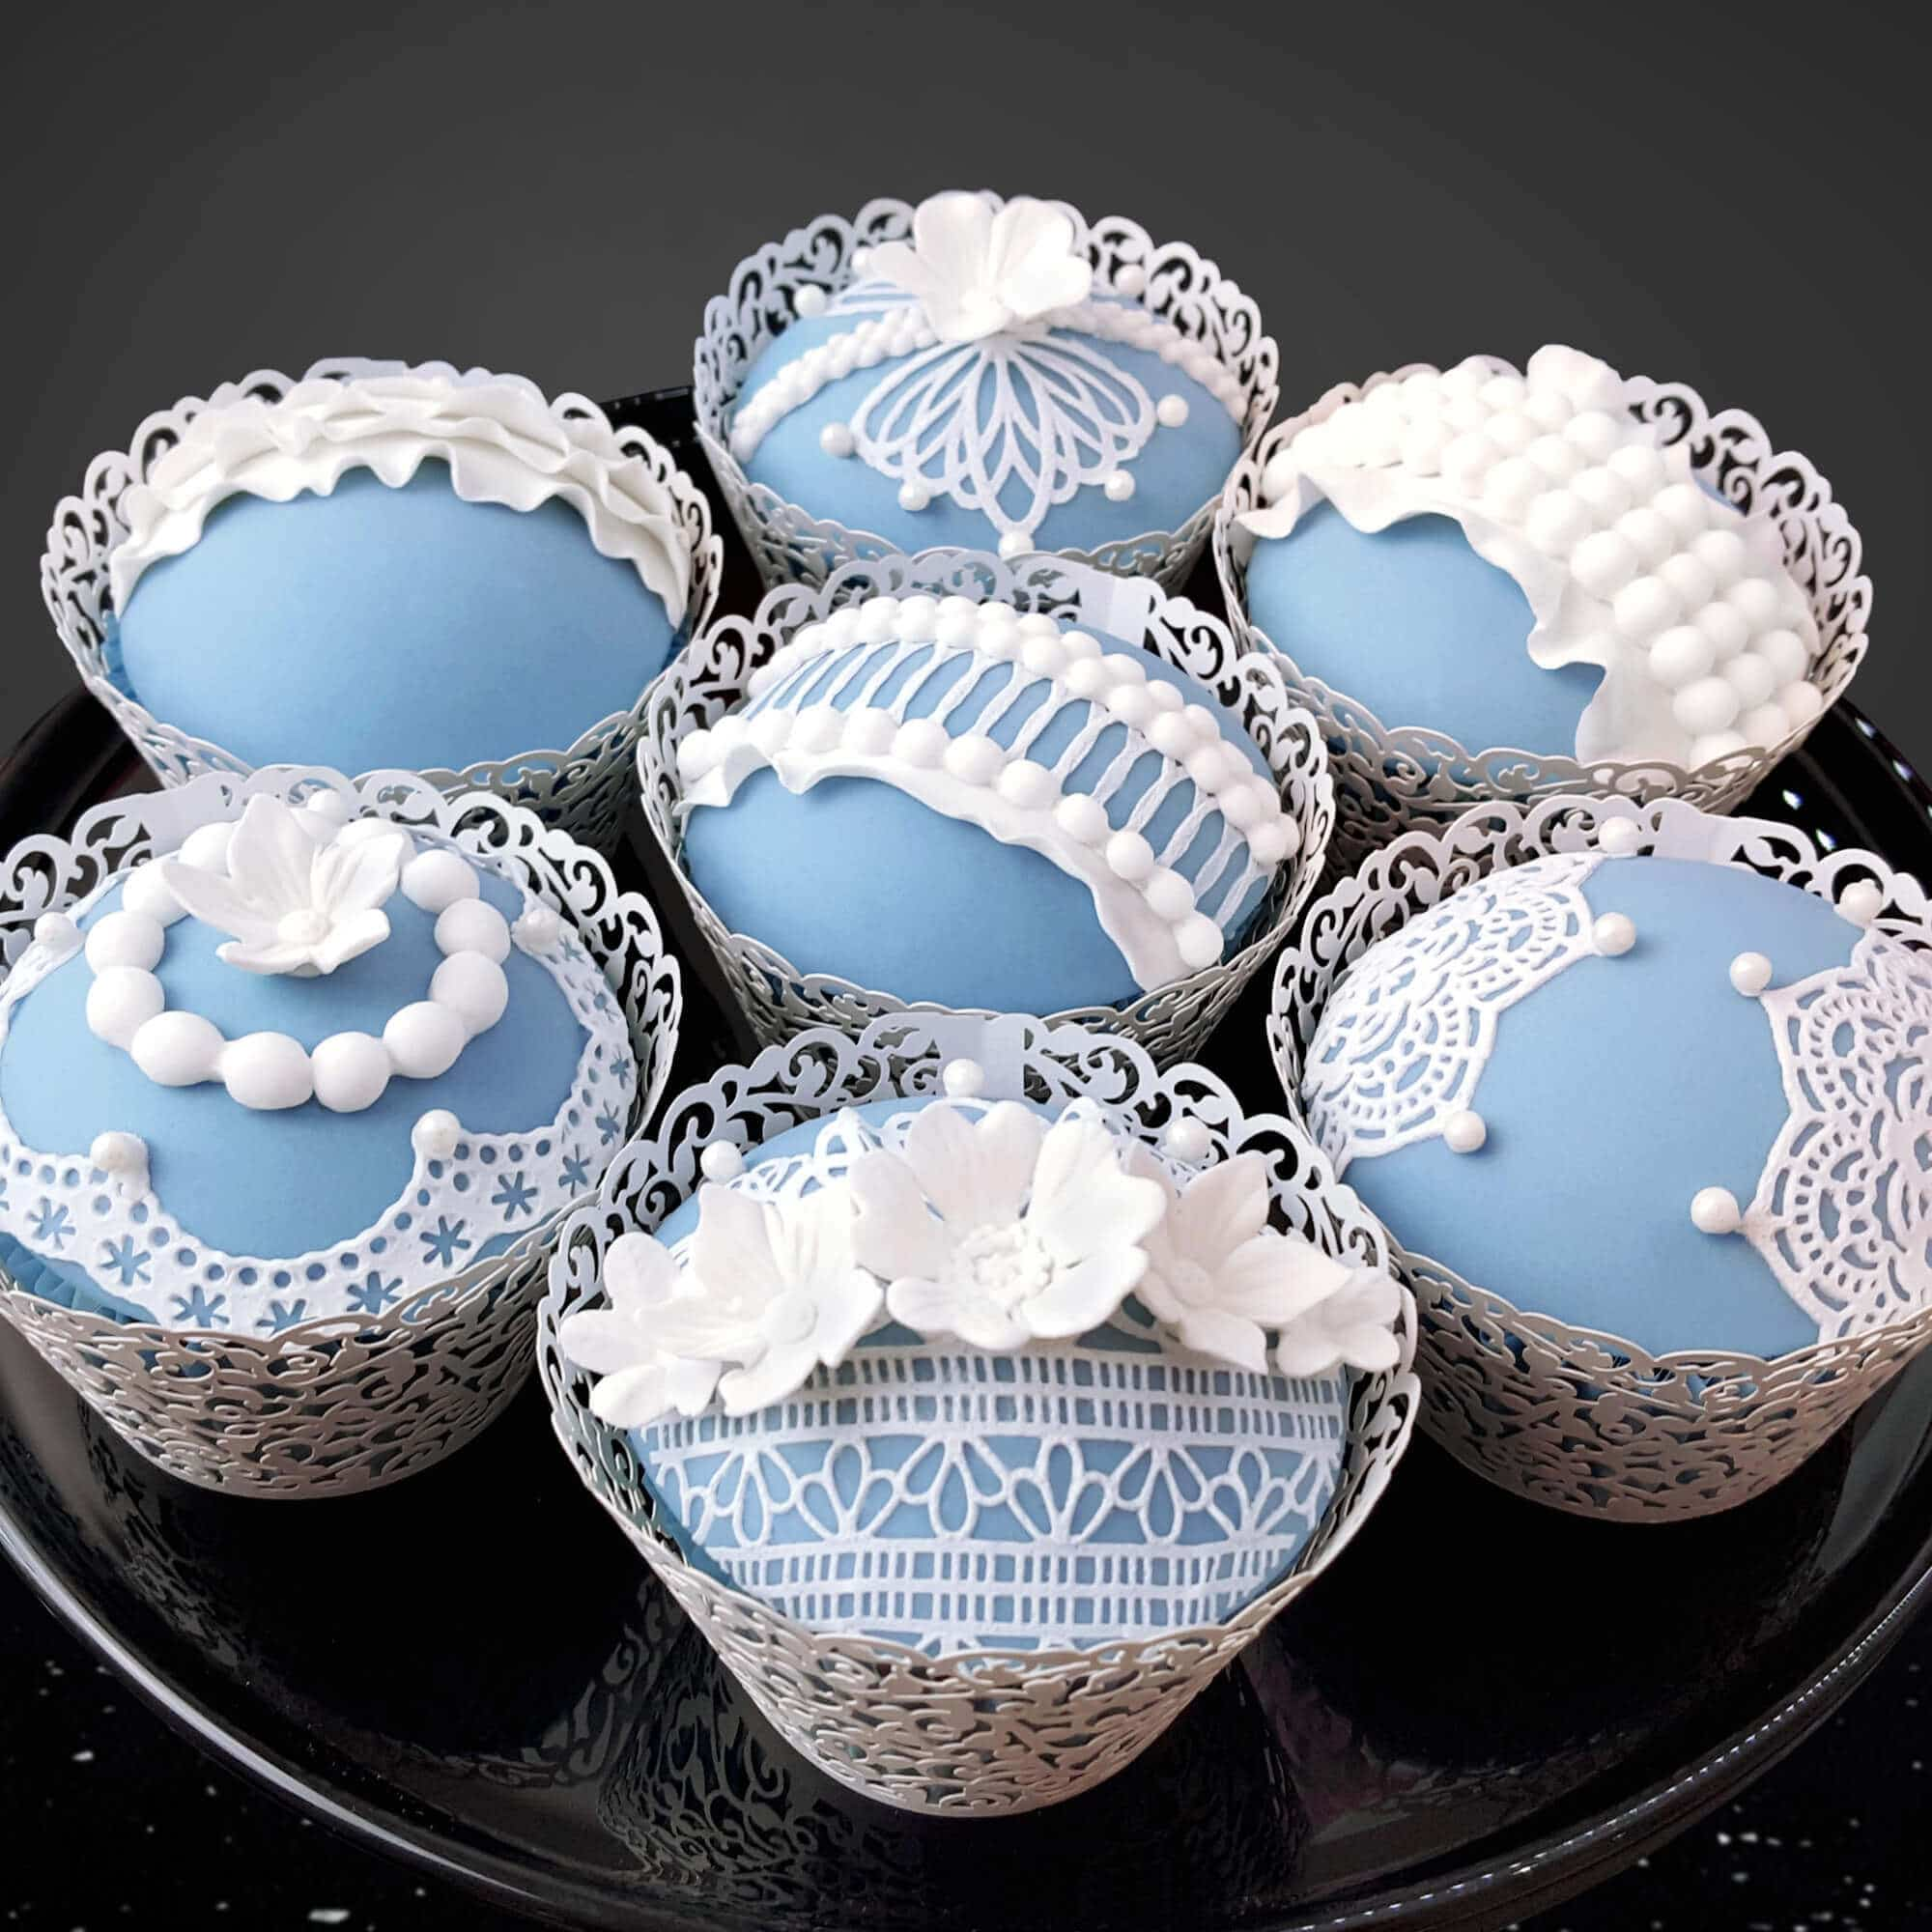 Wedgwood style cakes by Cake No Mistake